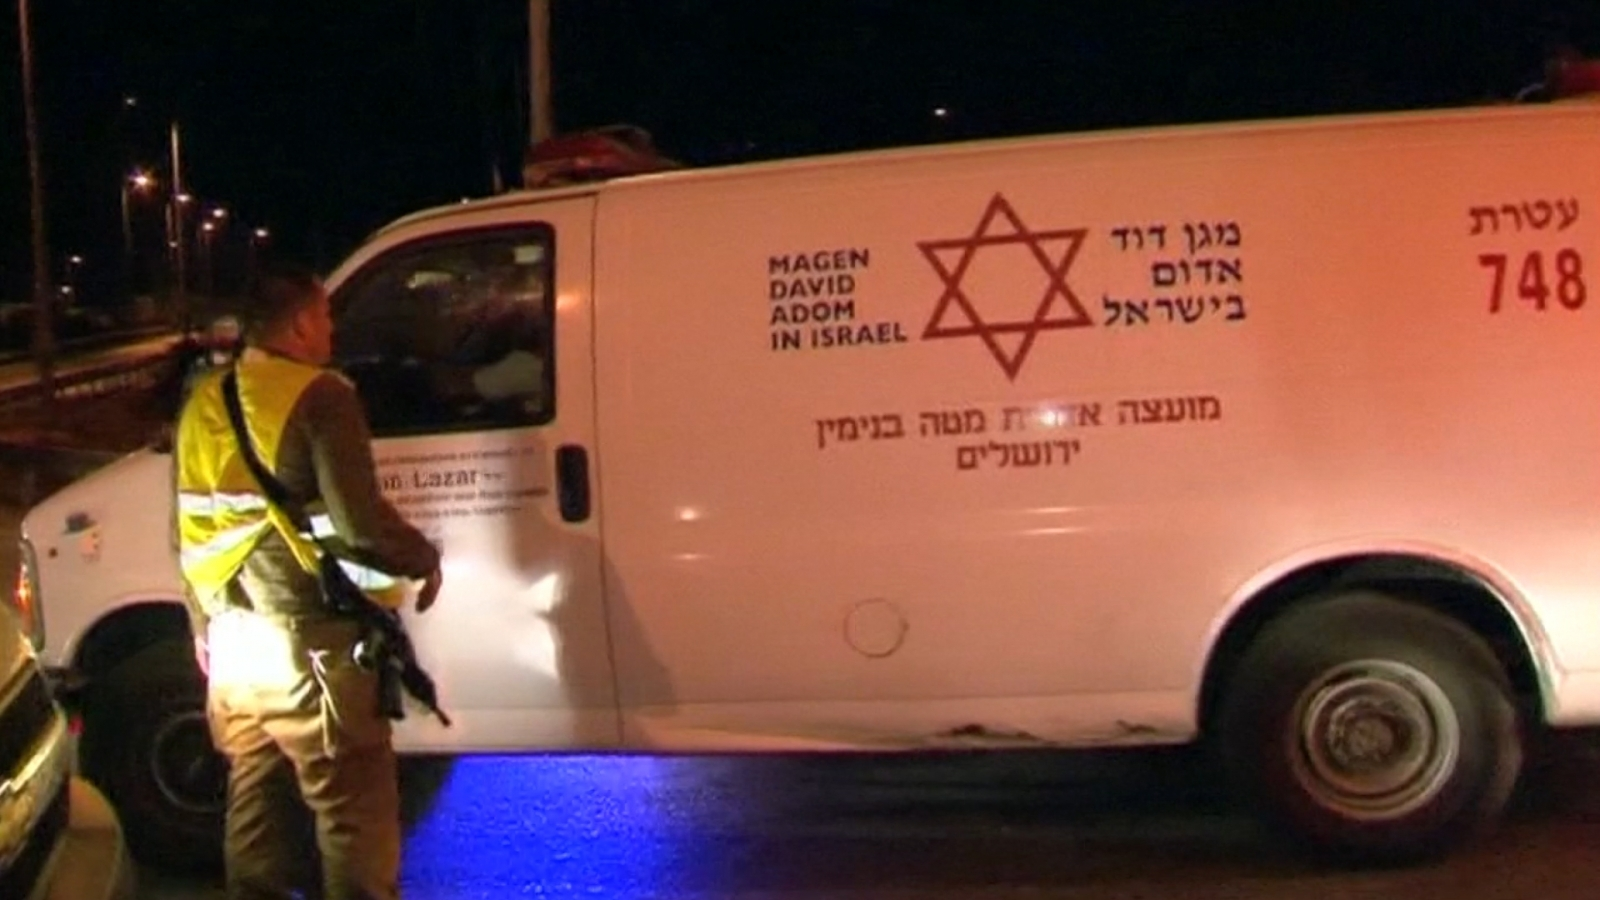 At least 3 Israeli civilians killed and one injured in West Bank stabbing attack